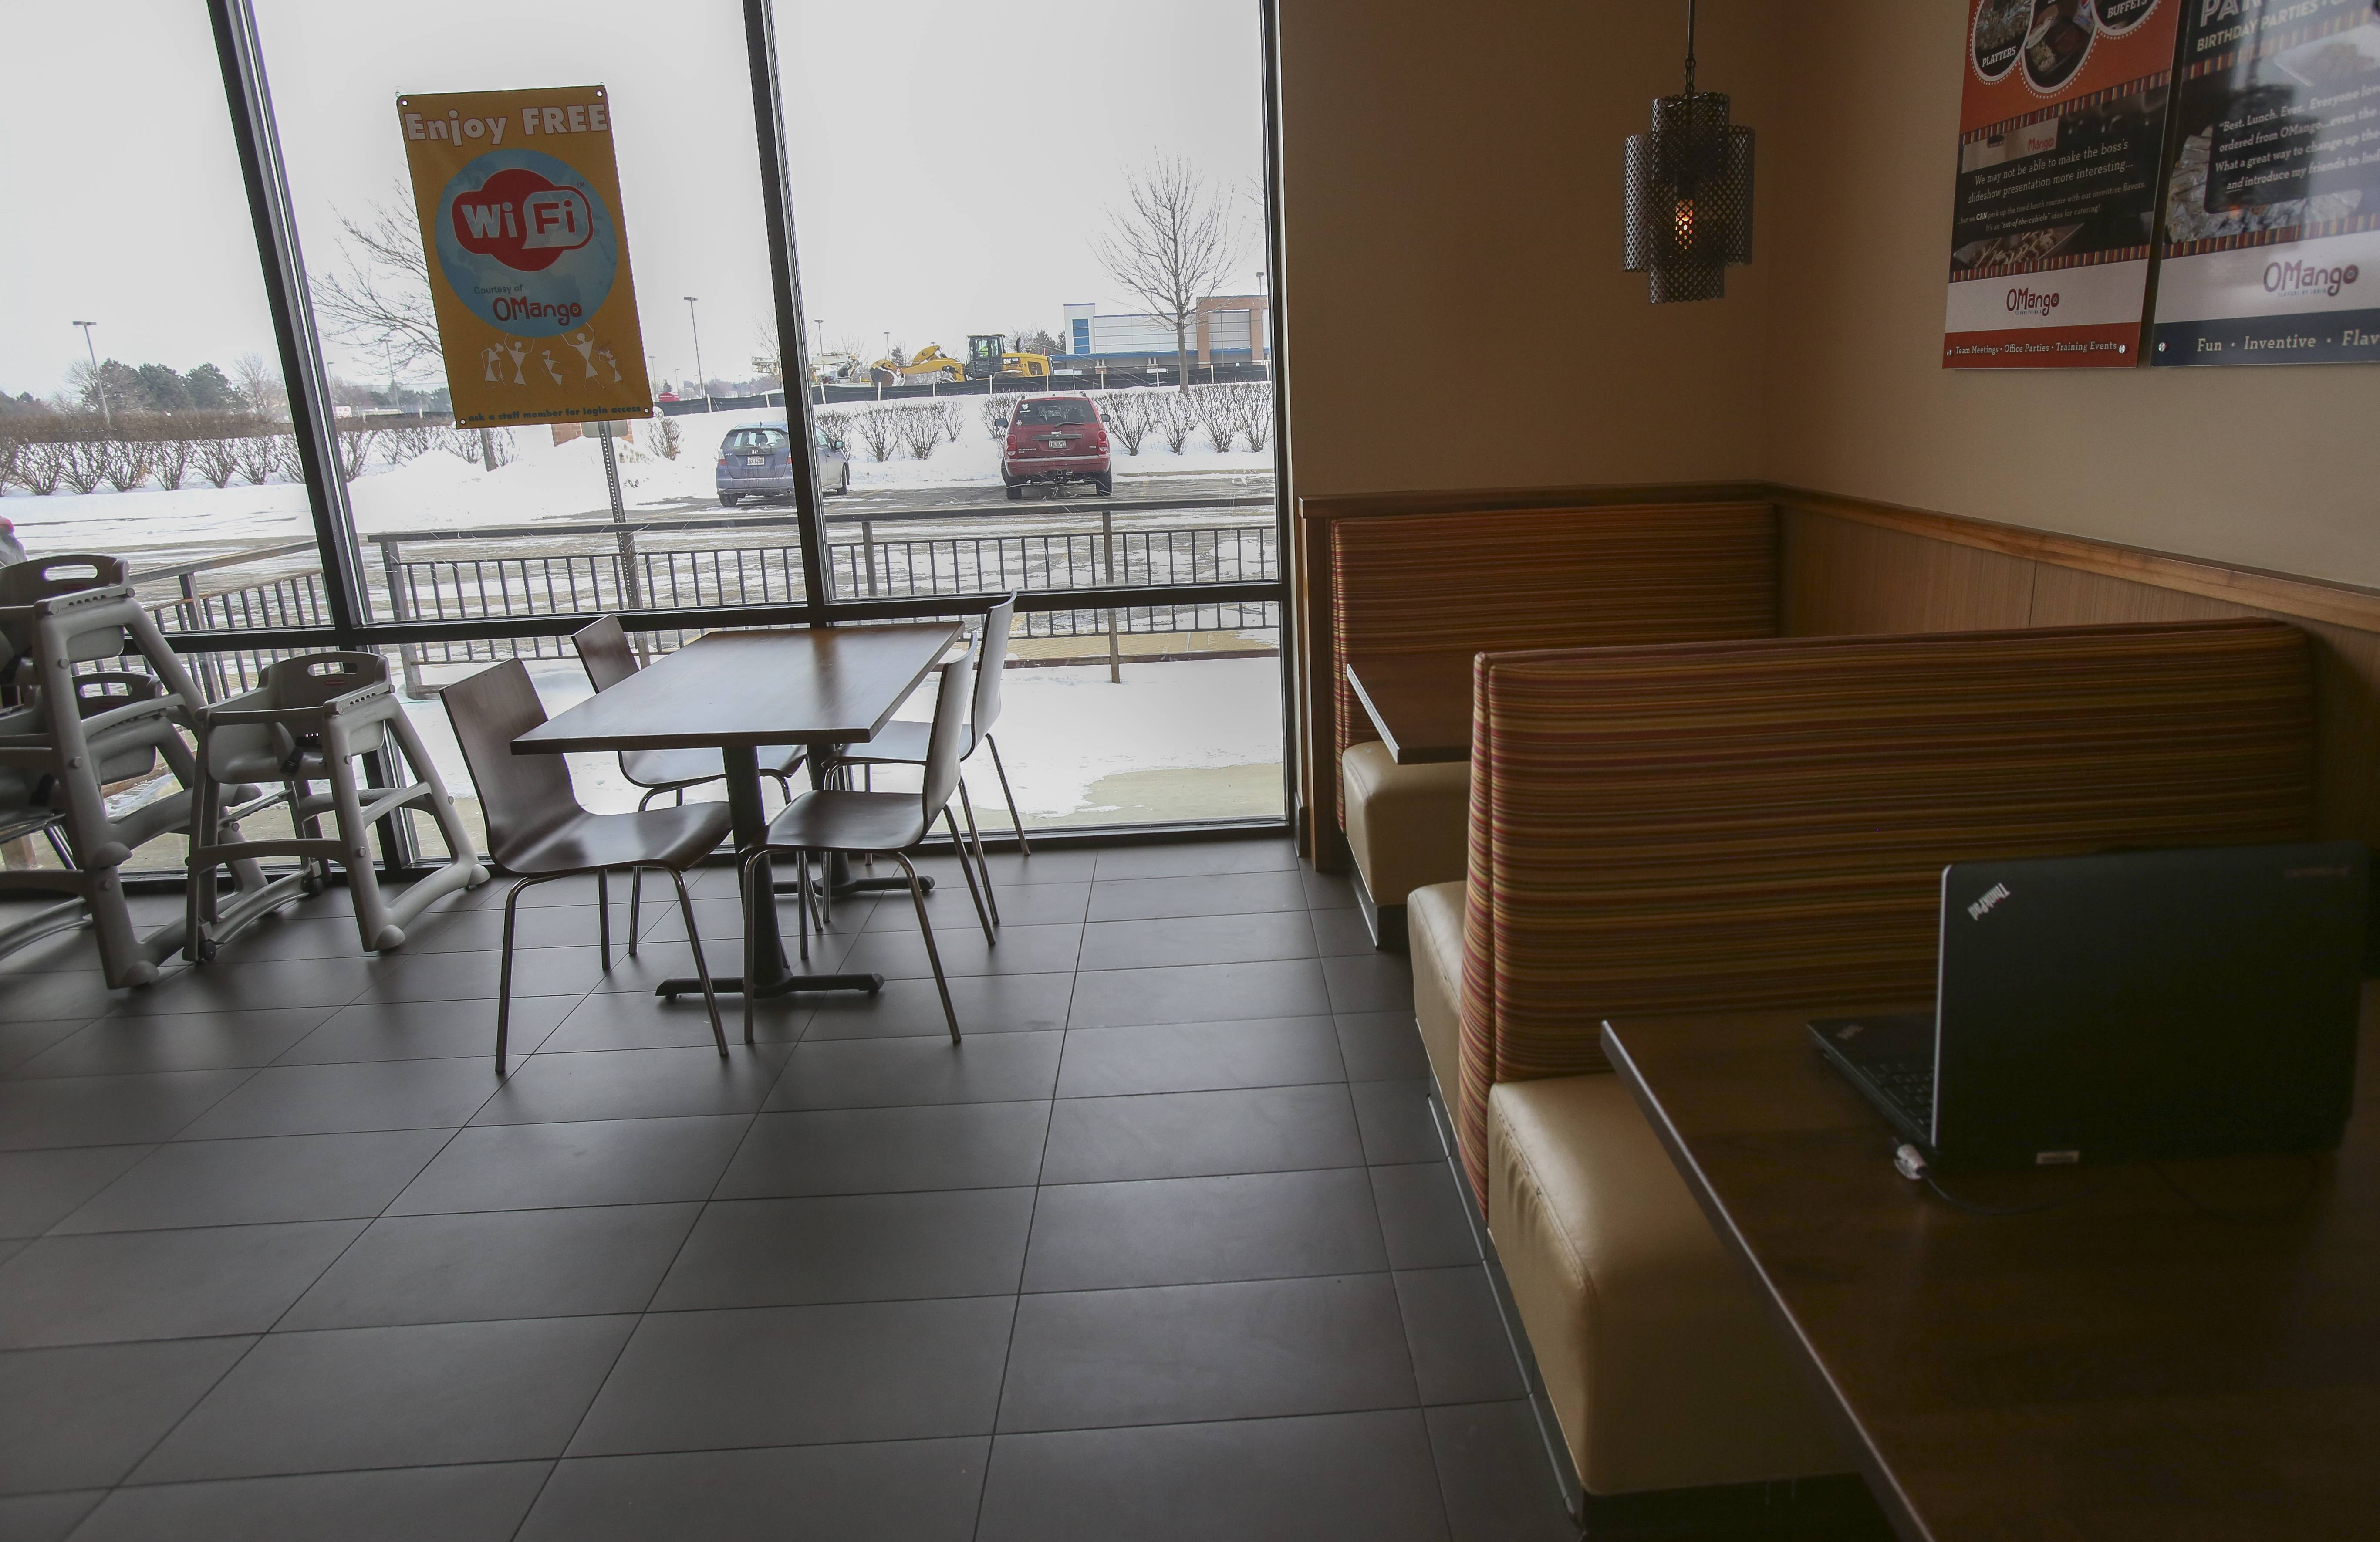 Empty tables and booths aren't unusual during the lunch hours at OMango Flavors of India on Route 59 in Aurora, where managers say fewer customers are venturing because of a two-year construction project to widen the road.